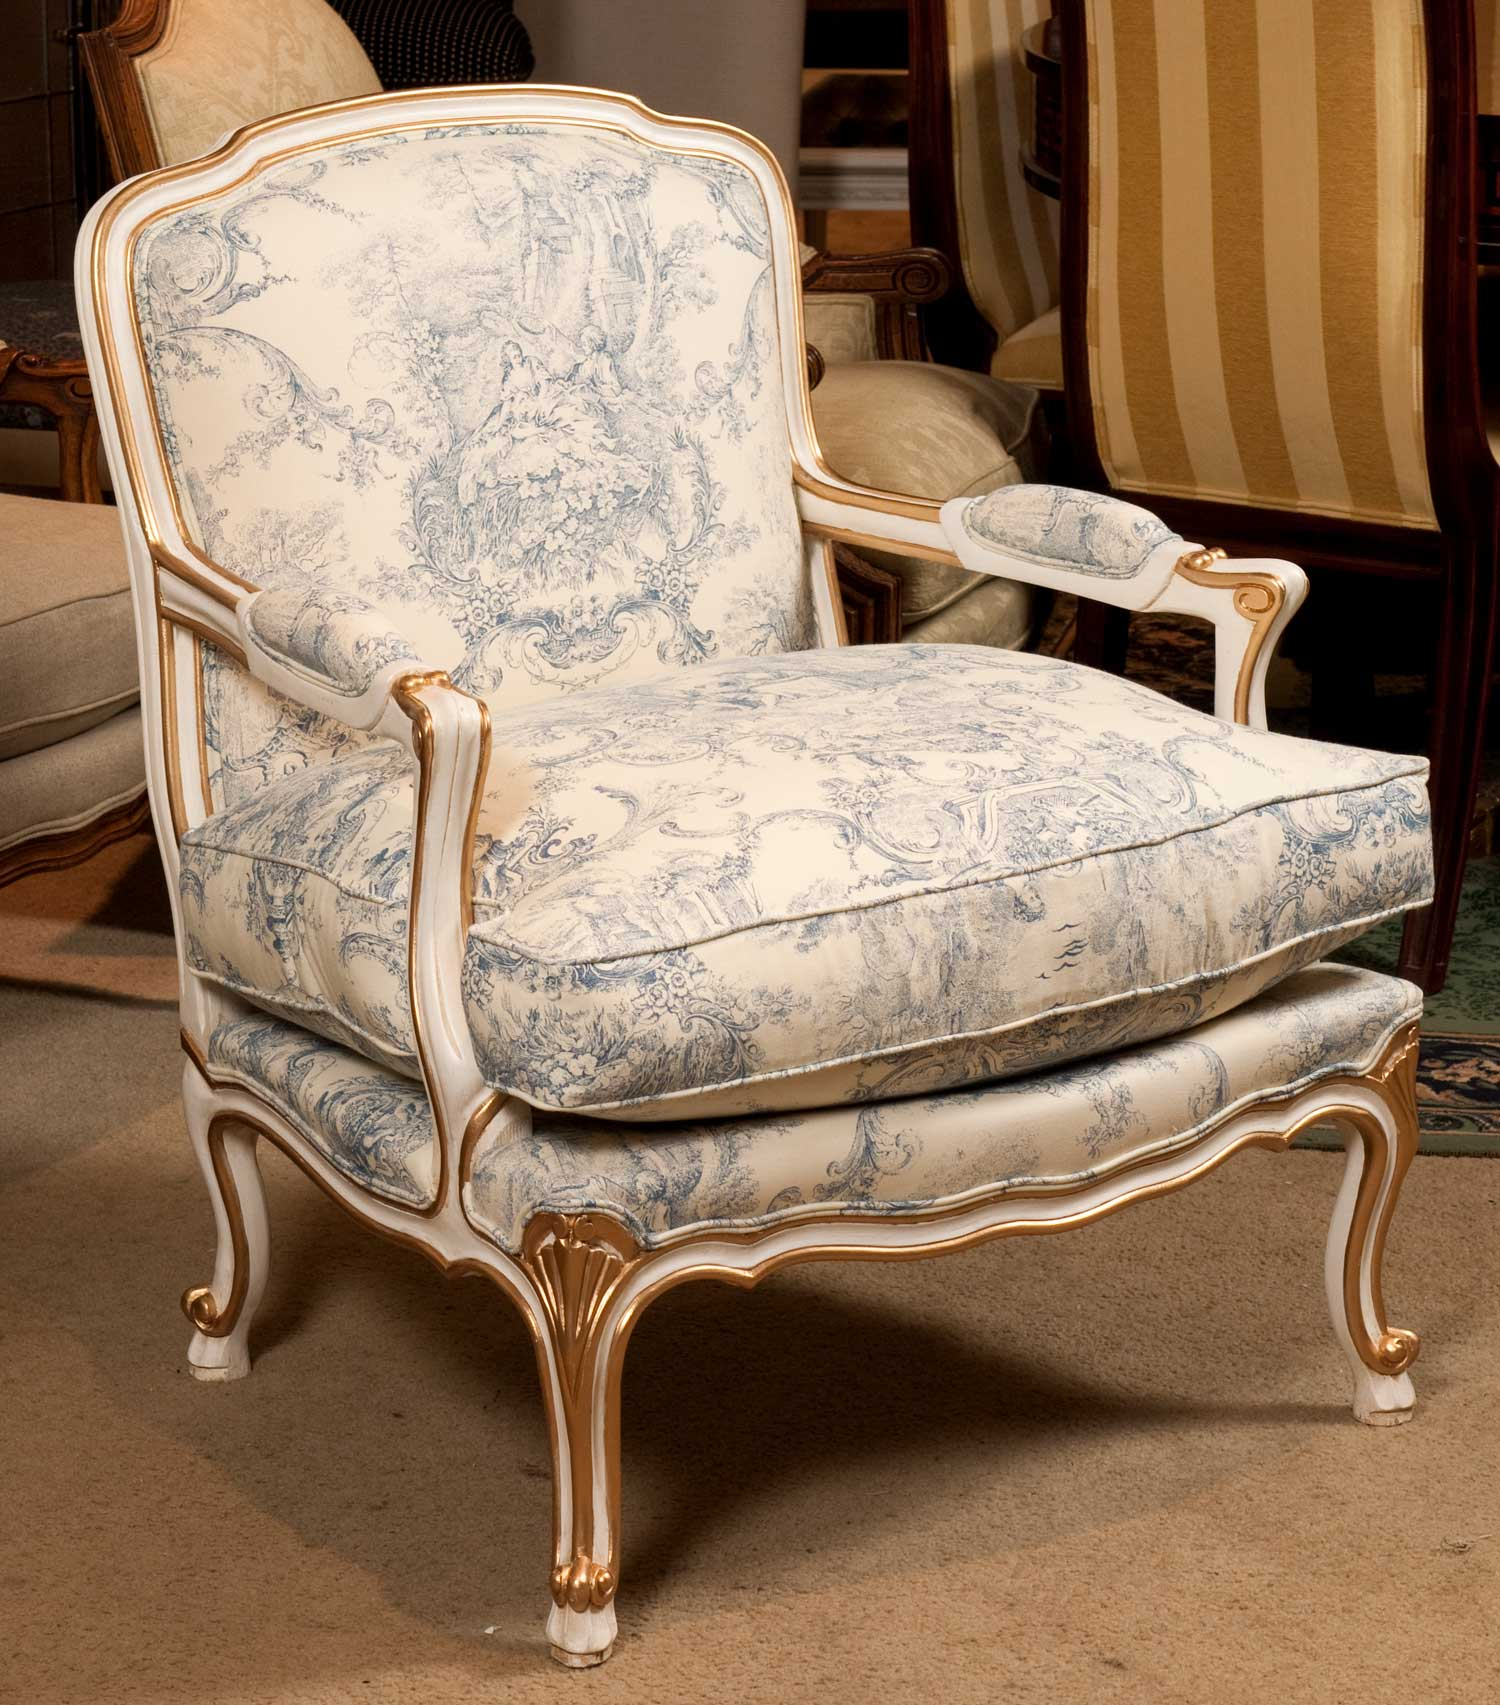 4- French toile fabric